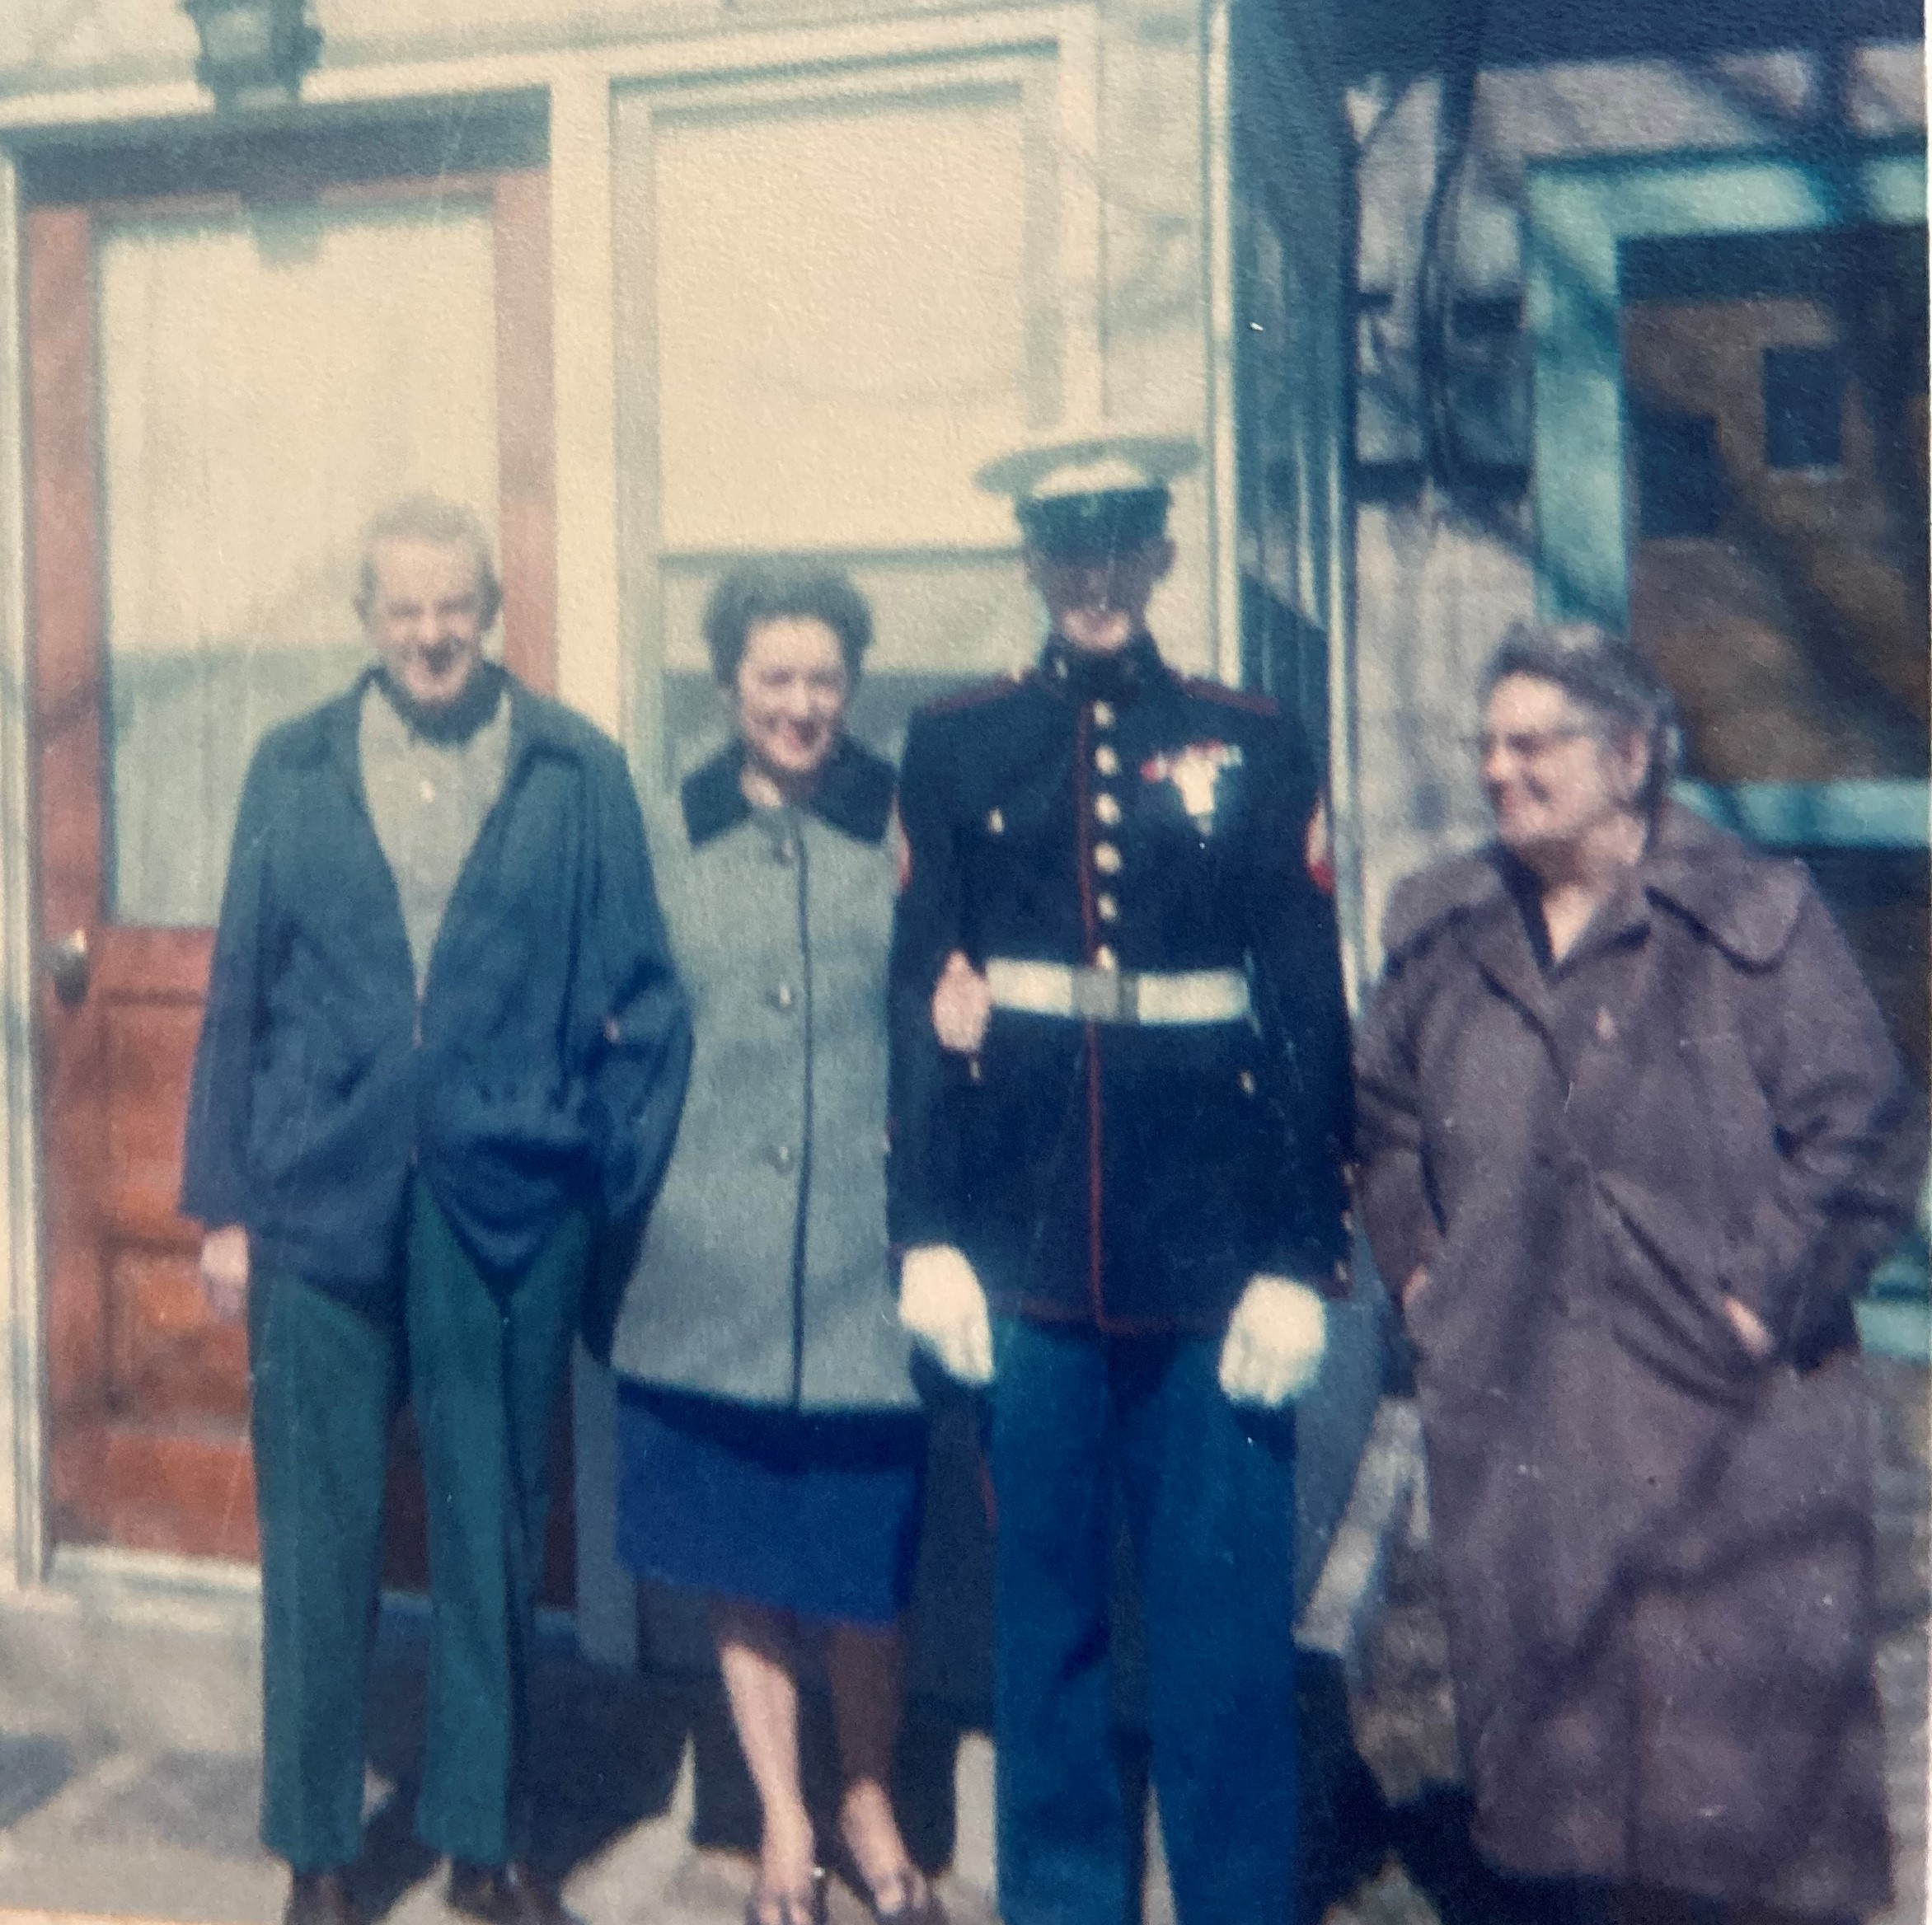 color photo of young man in uniform standing with 2 older women and an older man